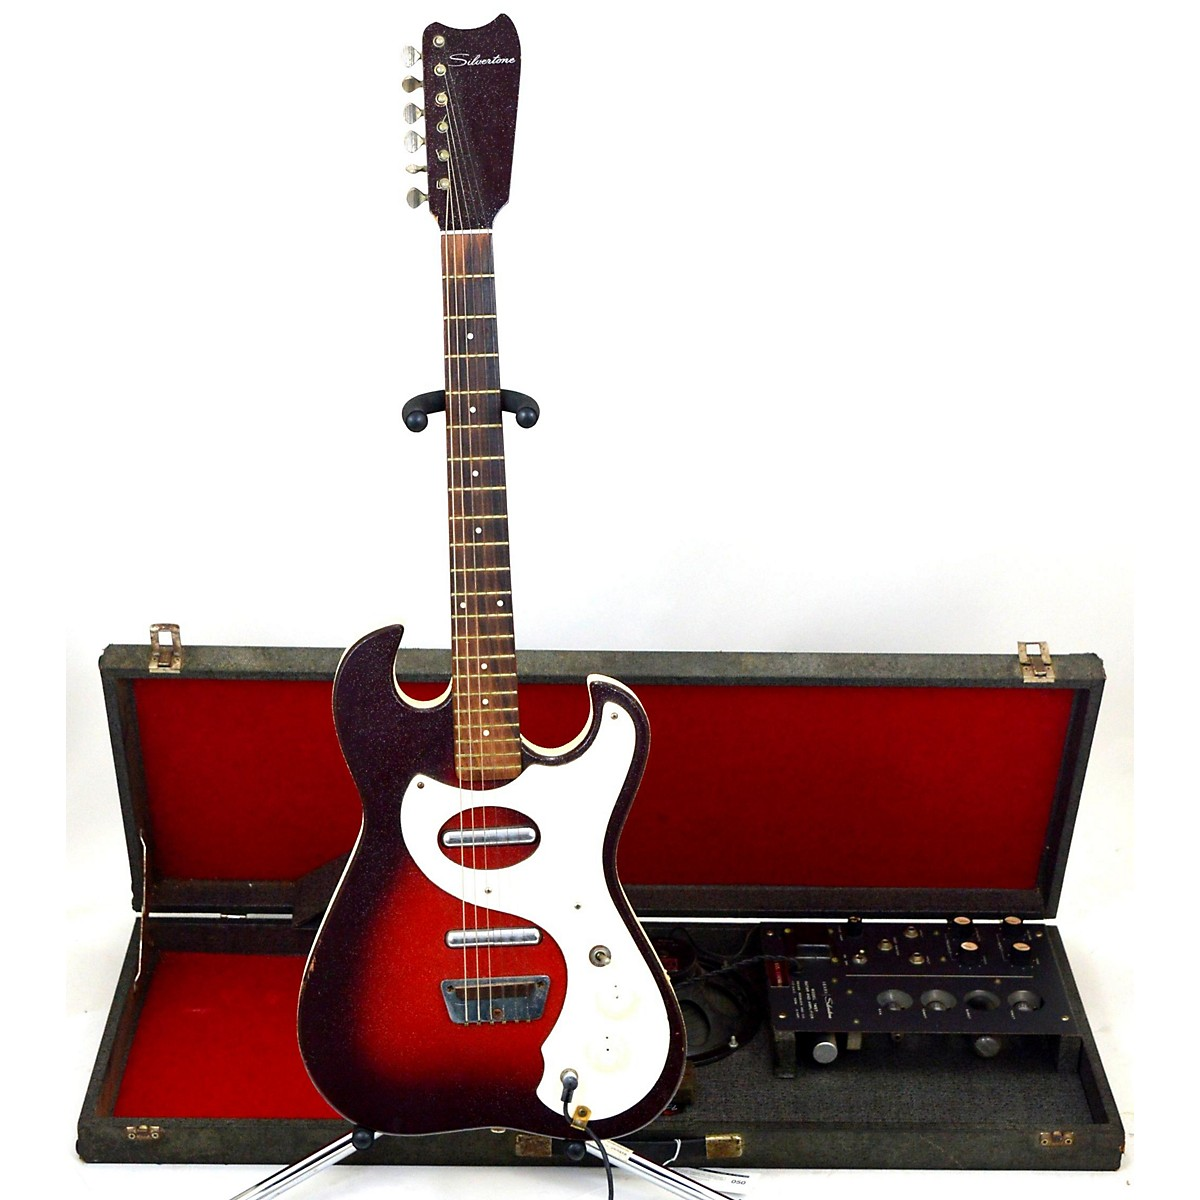 Silvertone 1960s 1457 With Amp-in-Case Solid Body Electric Guitar